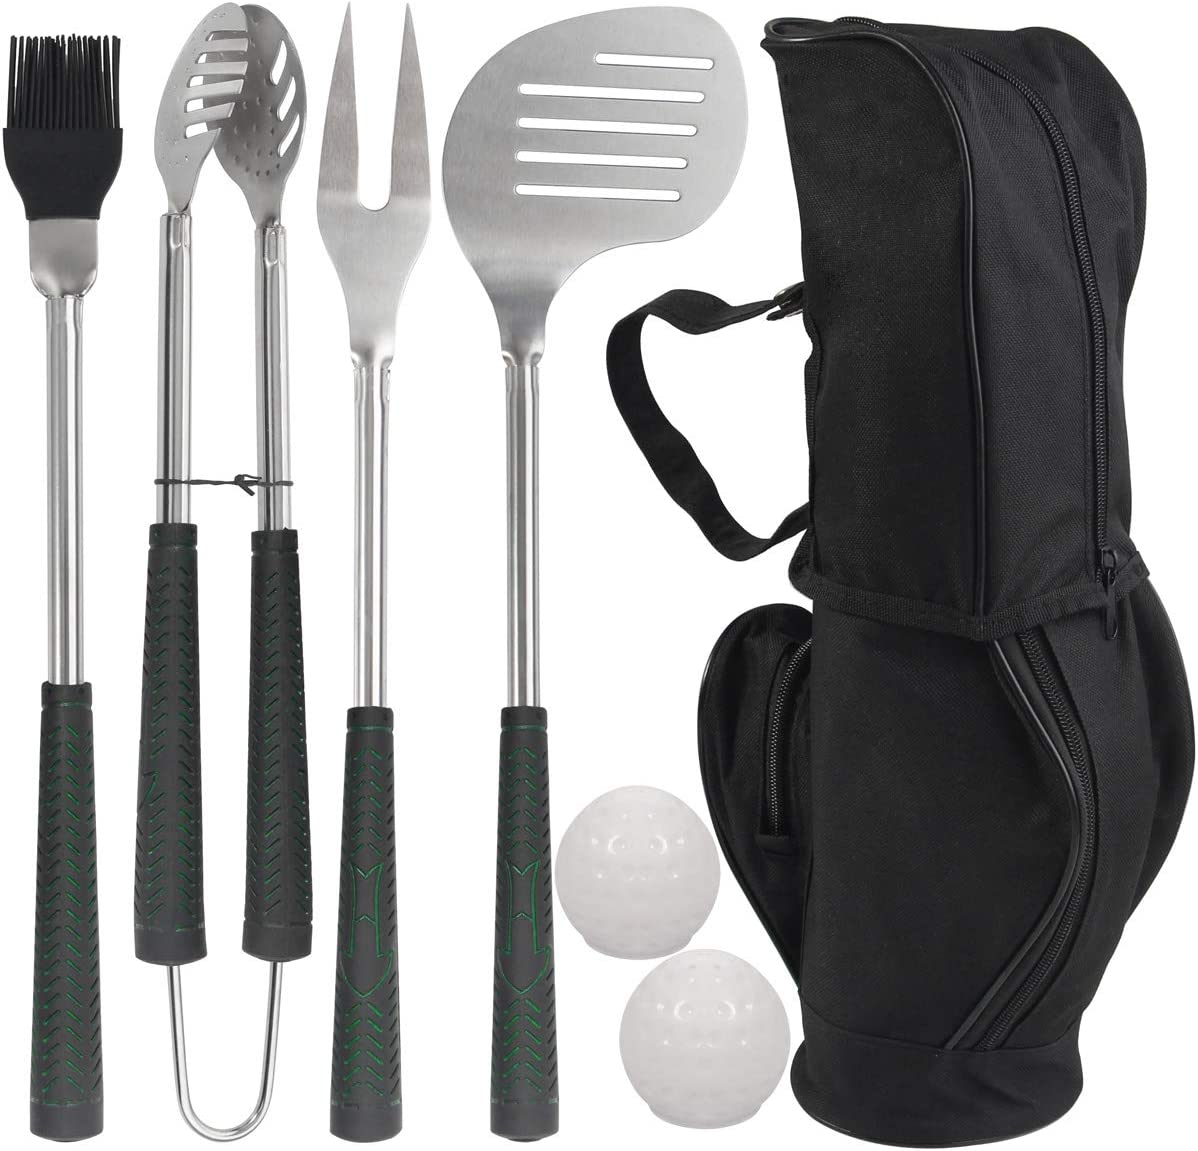 POLIGO 7pcs Golf-Club Style Grilling Accessories Set with Rubber Handle - Stainless Steel BBQ Tools in Bag for Camping - Premium Grill Utensils Kit Present Ideal Fathers Day Birthday Gifts for Men Dad